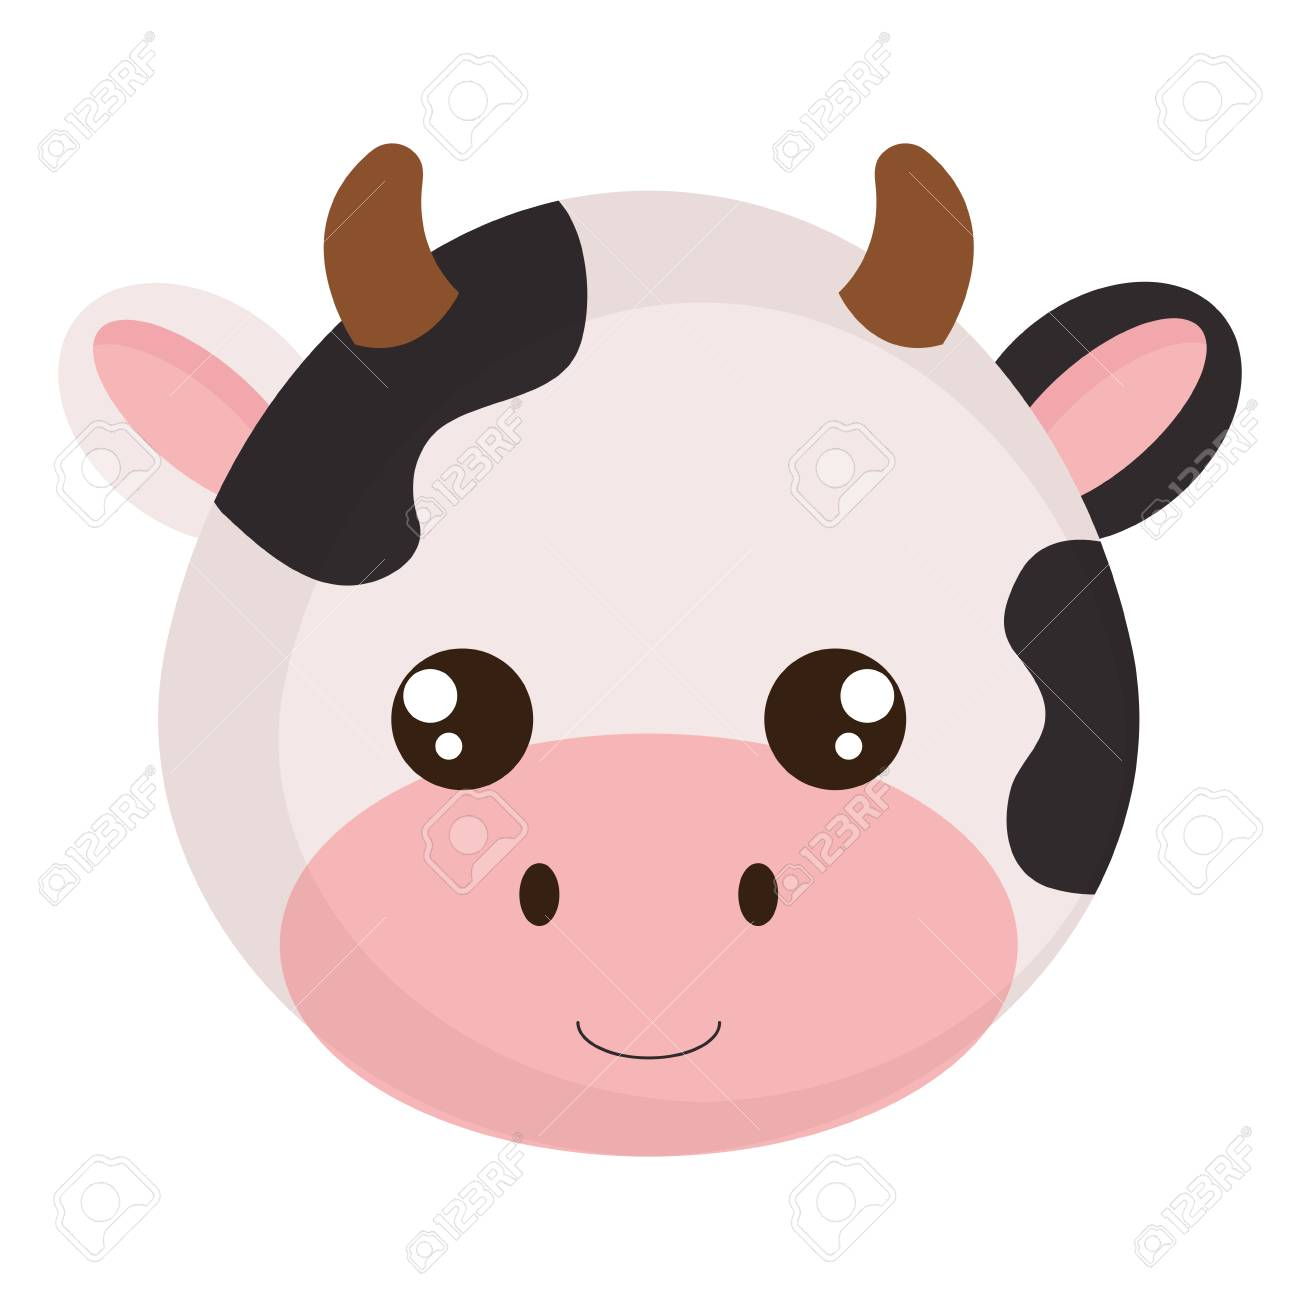 cute and little cow head character vector illustration design - 99651994